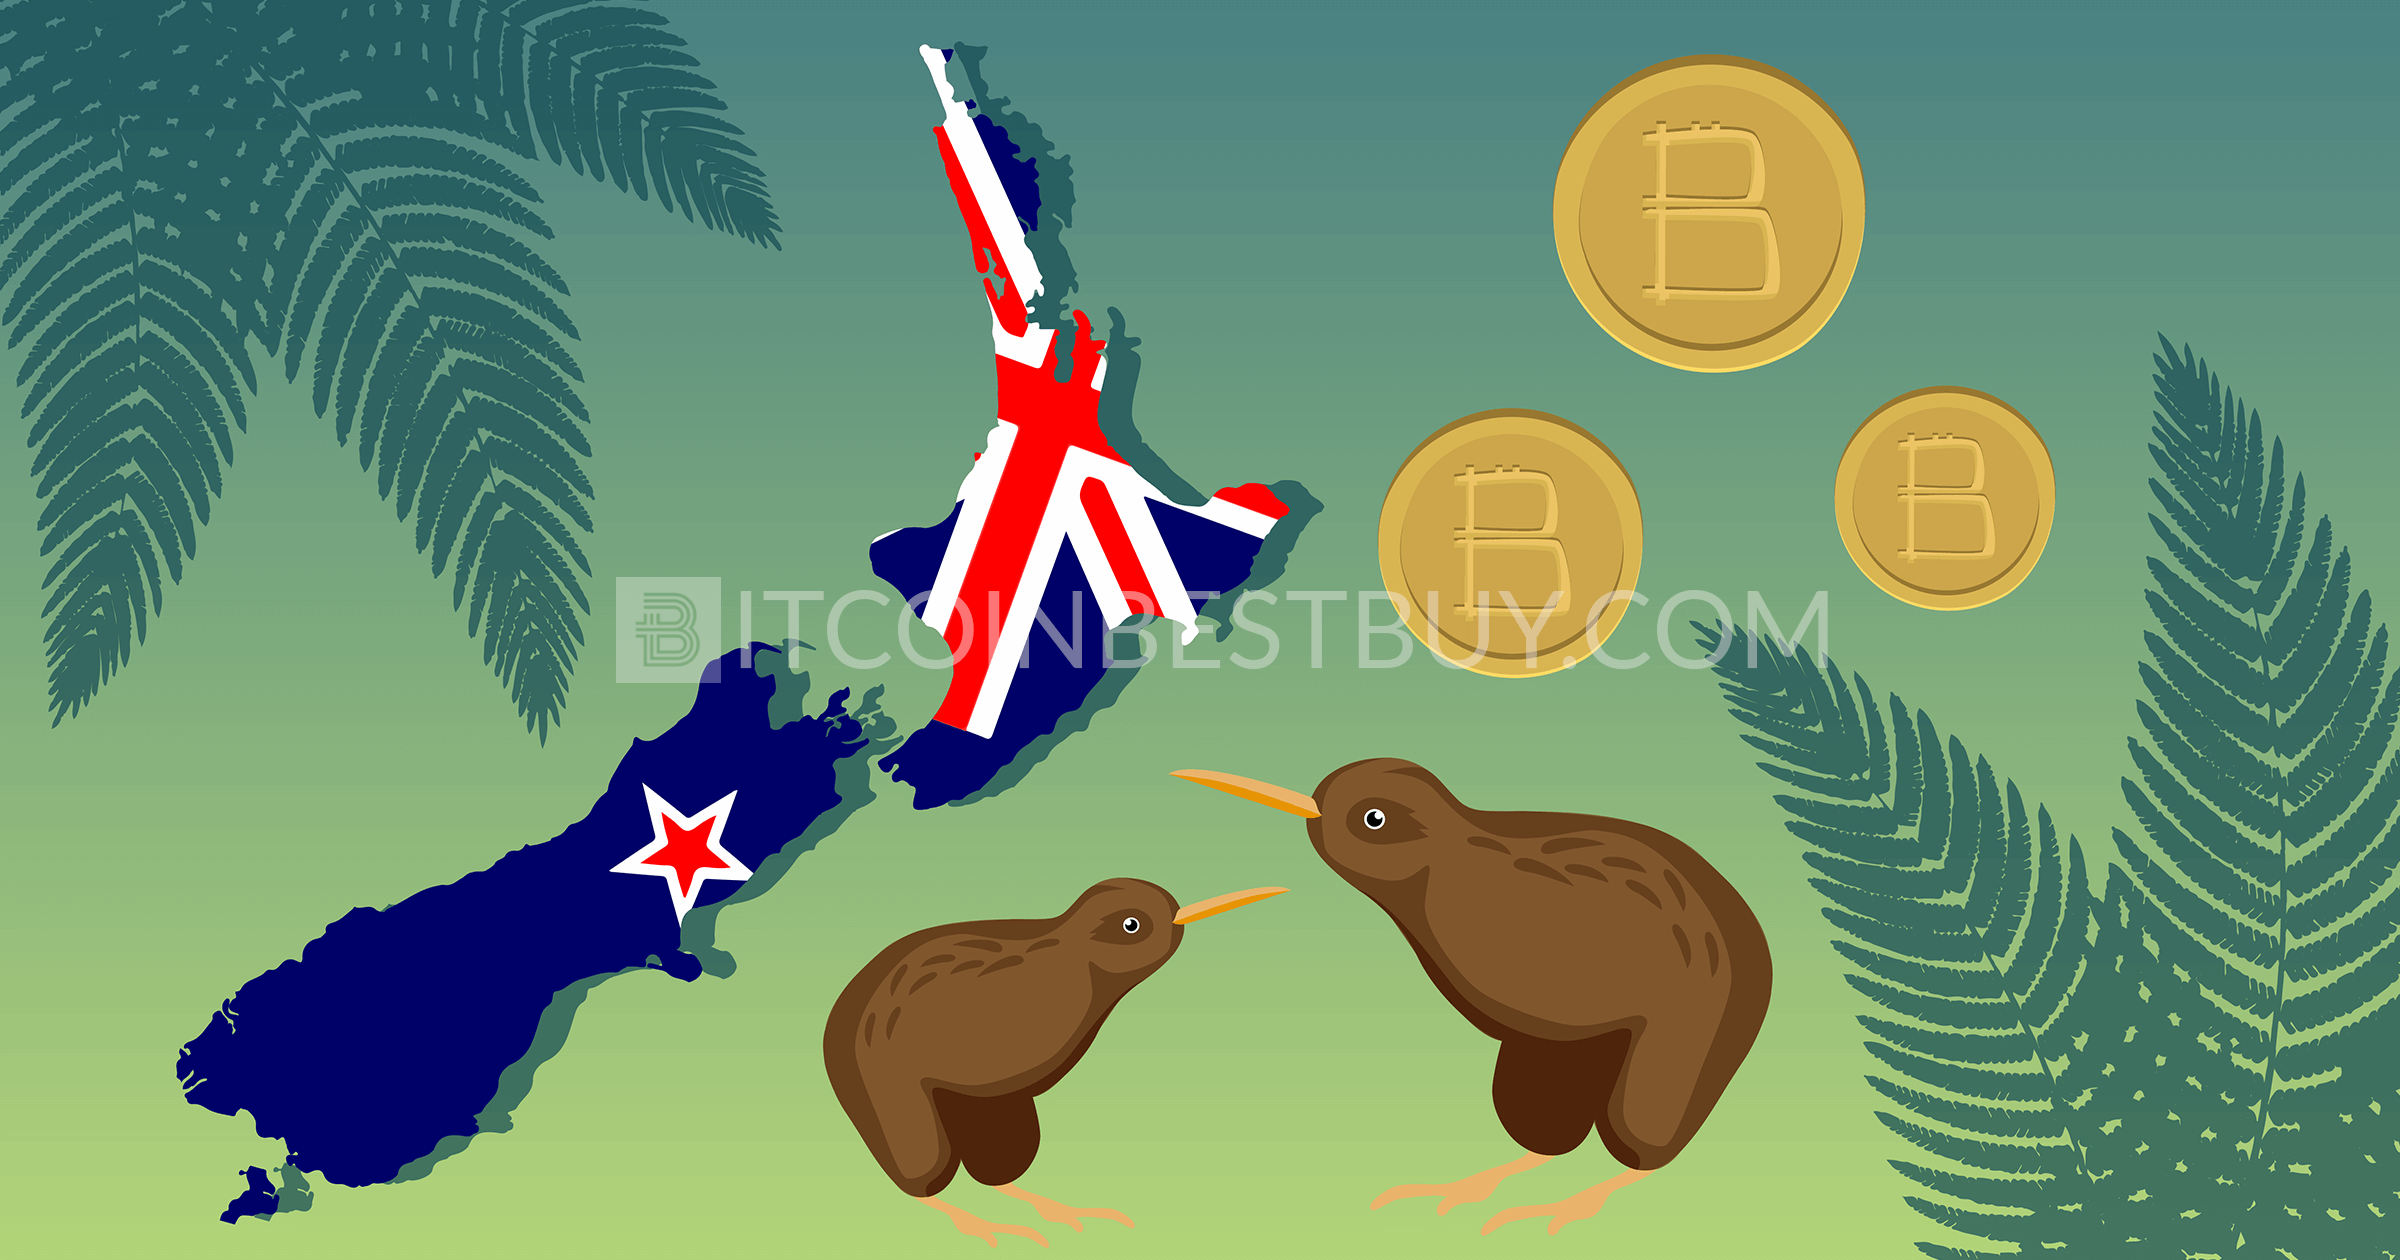 How to buy bitcoin in New Zealand